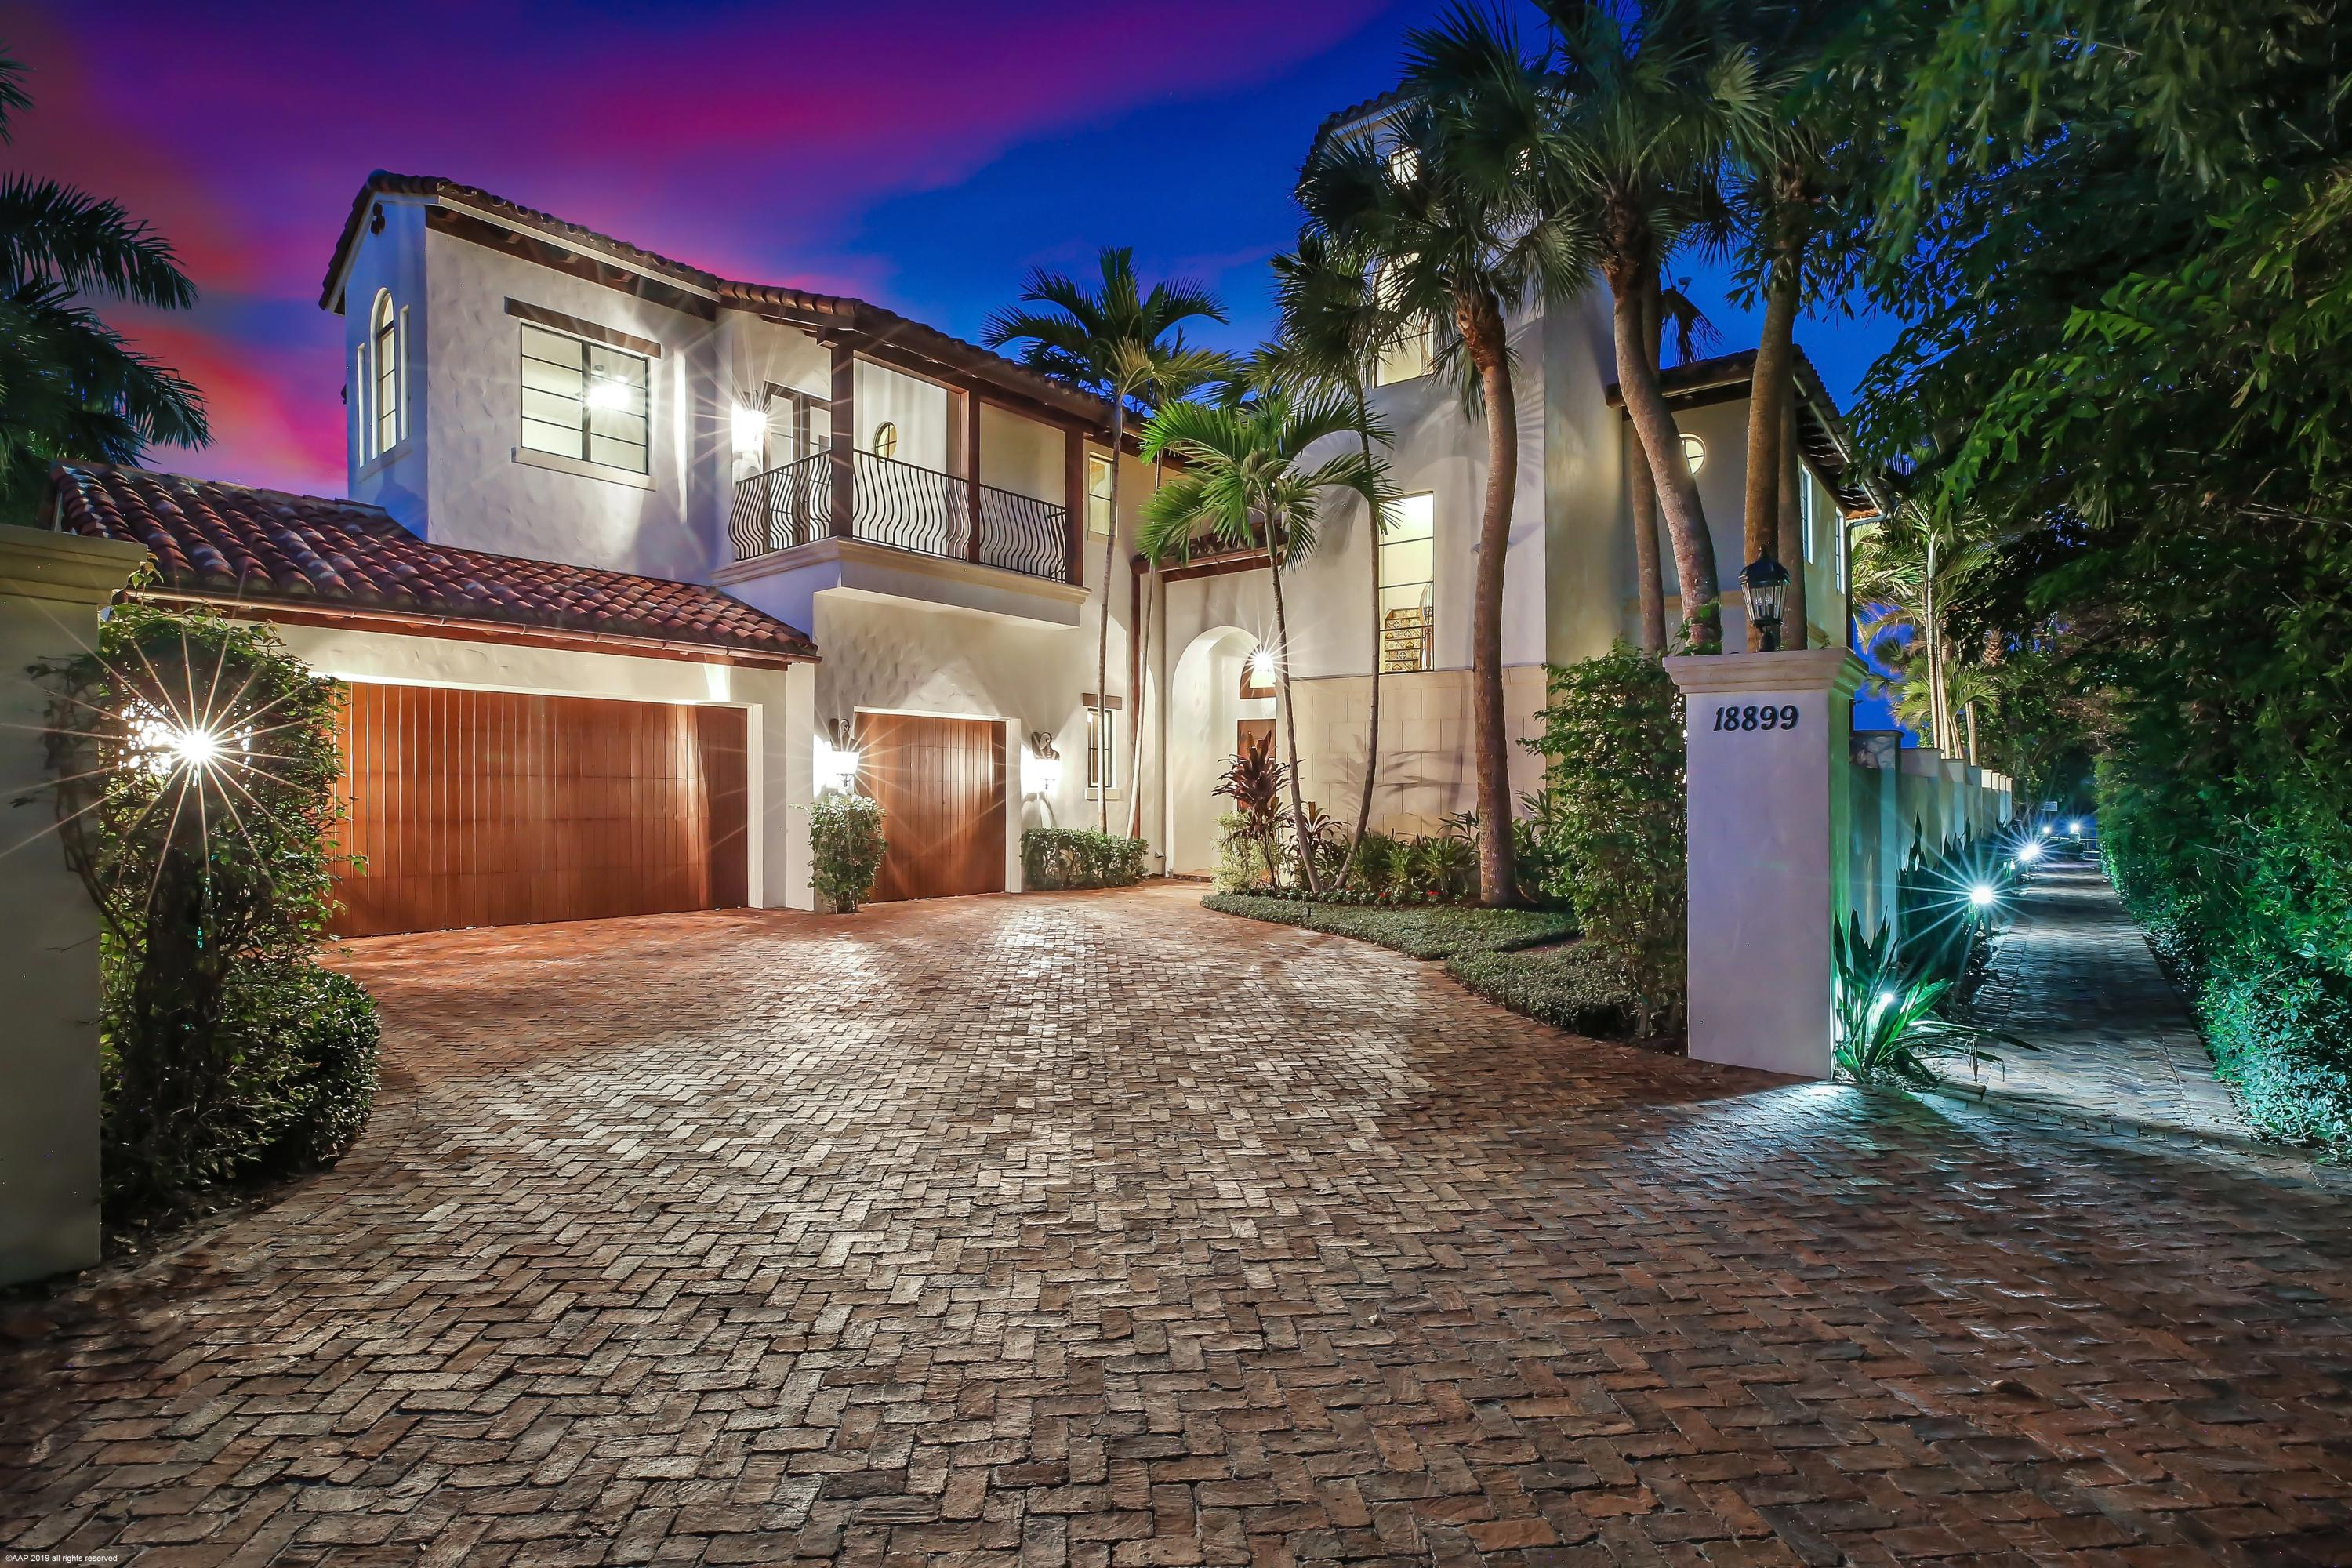 18899 SE Jupiter Inlet Way, one of homes for sale in Tequesta